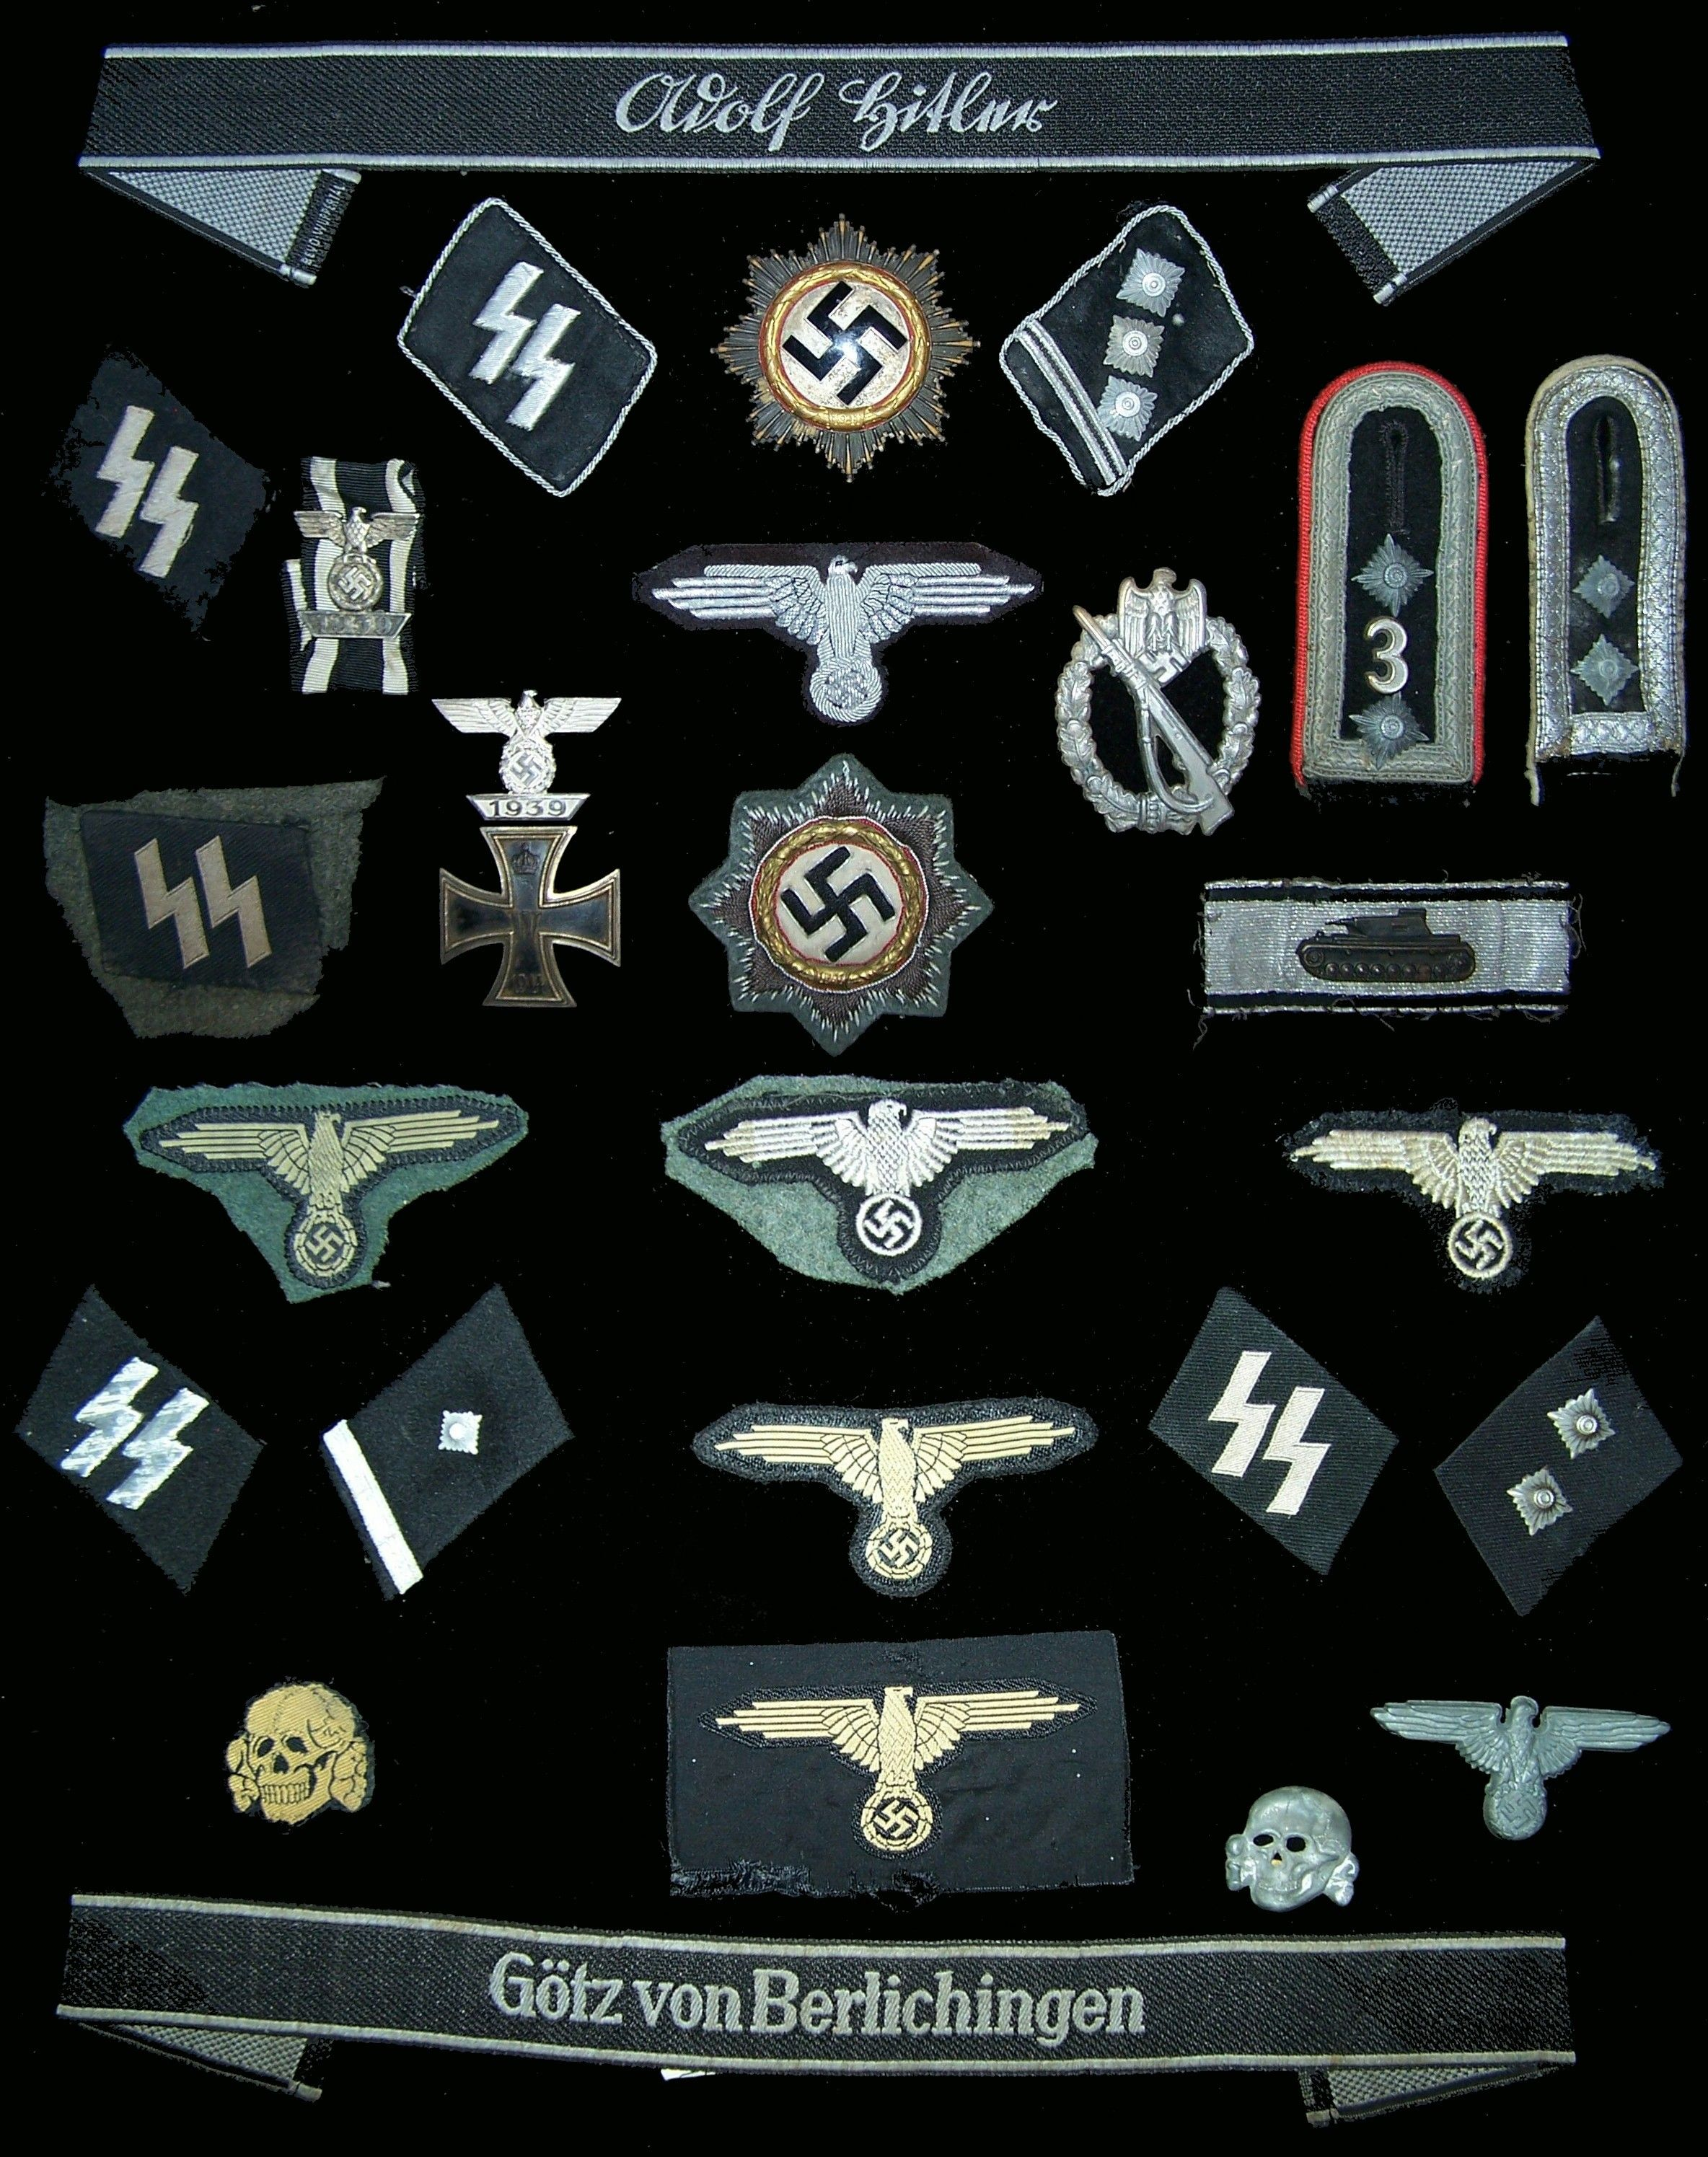 How can I write the German symbol for ss?